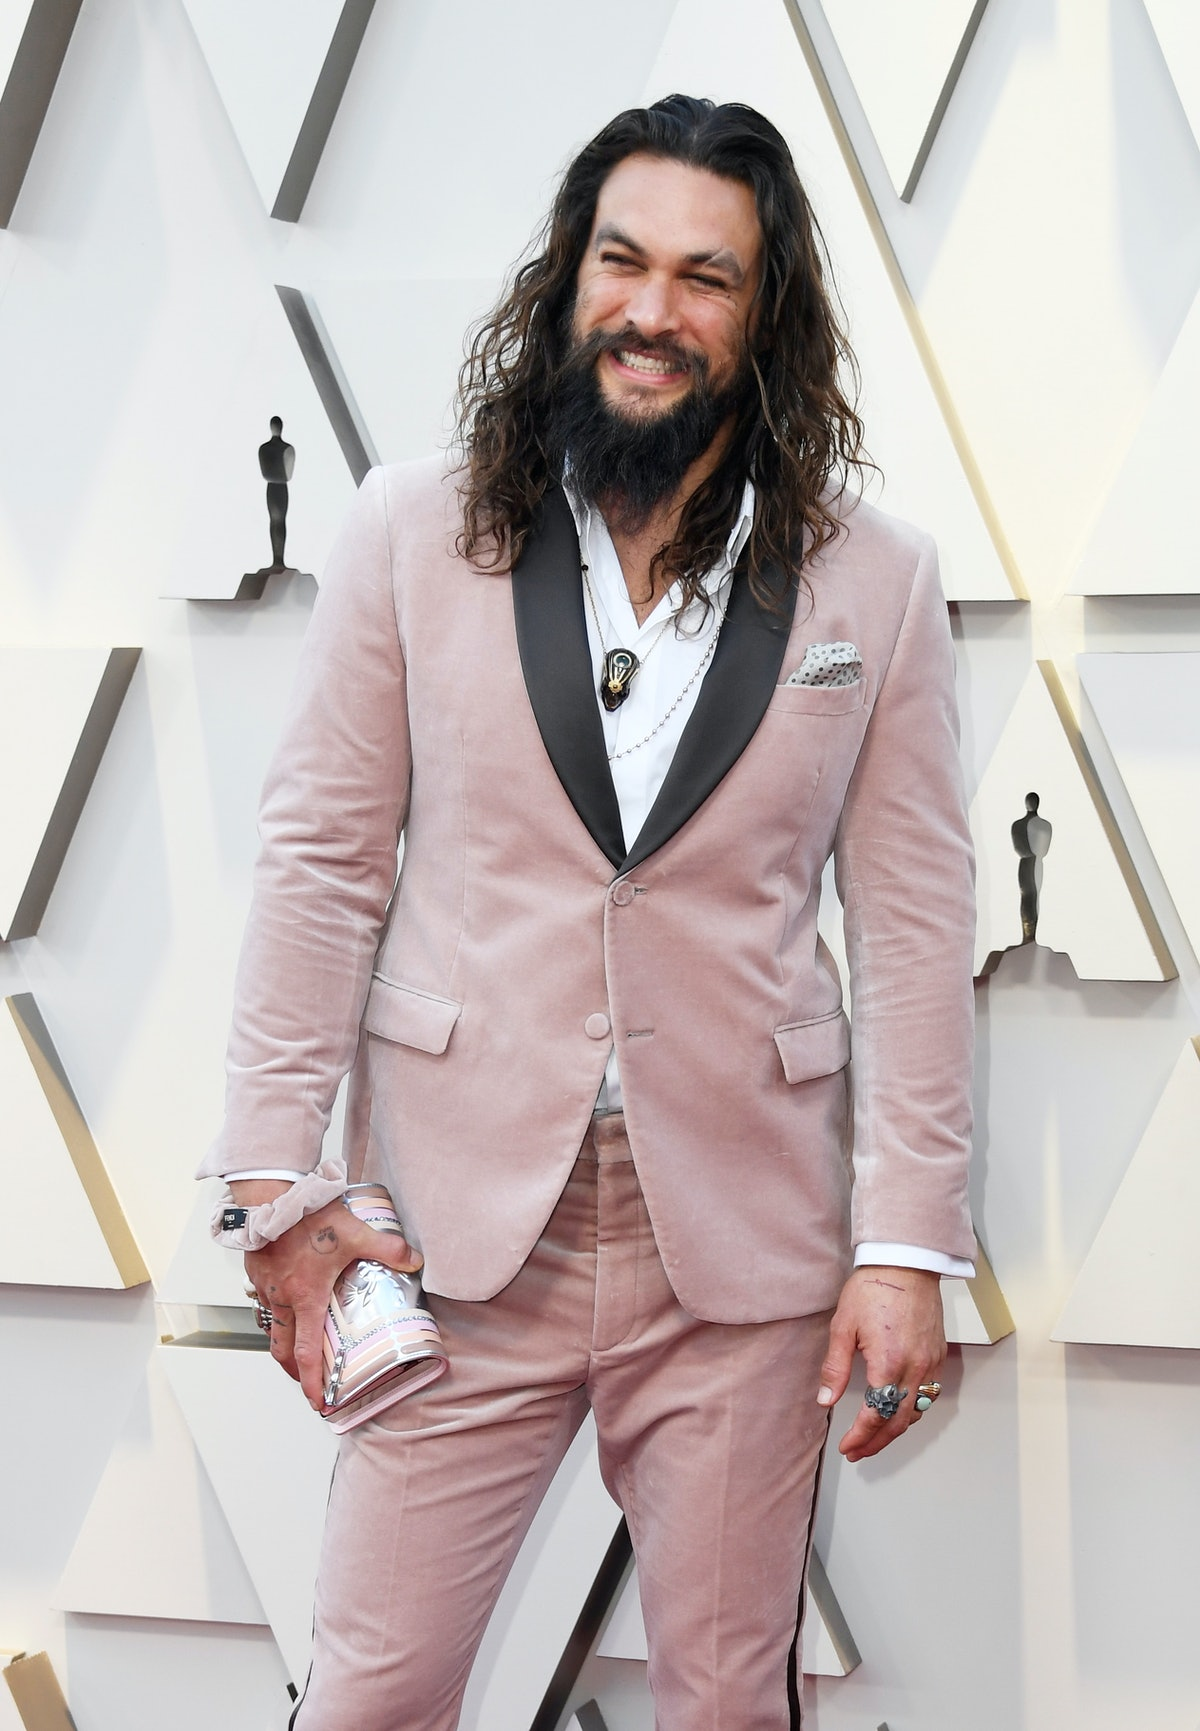 Jason Momoa Shaved His Beard To Promote Recycling & He No Longer Looks Like Khal Drogo